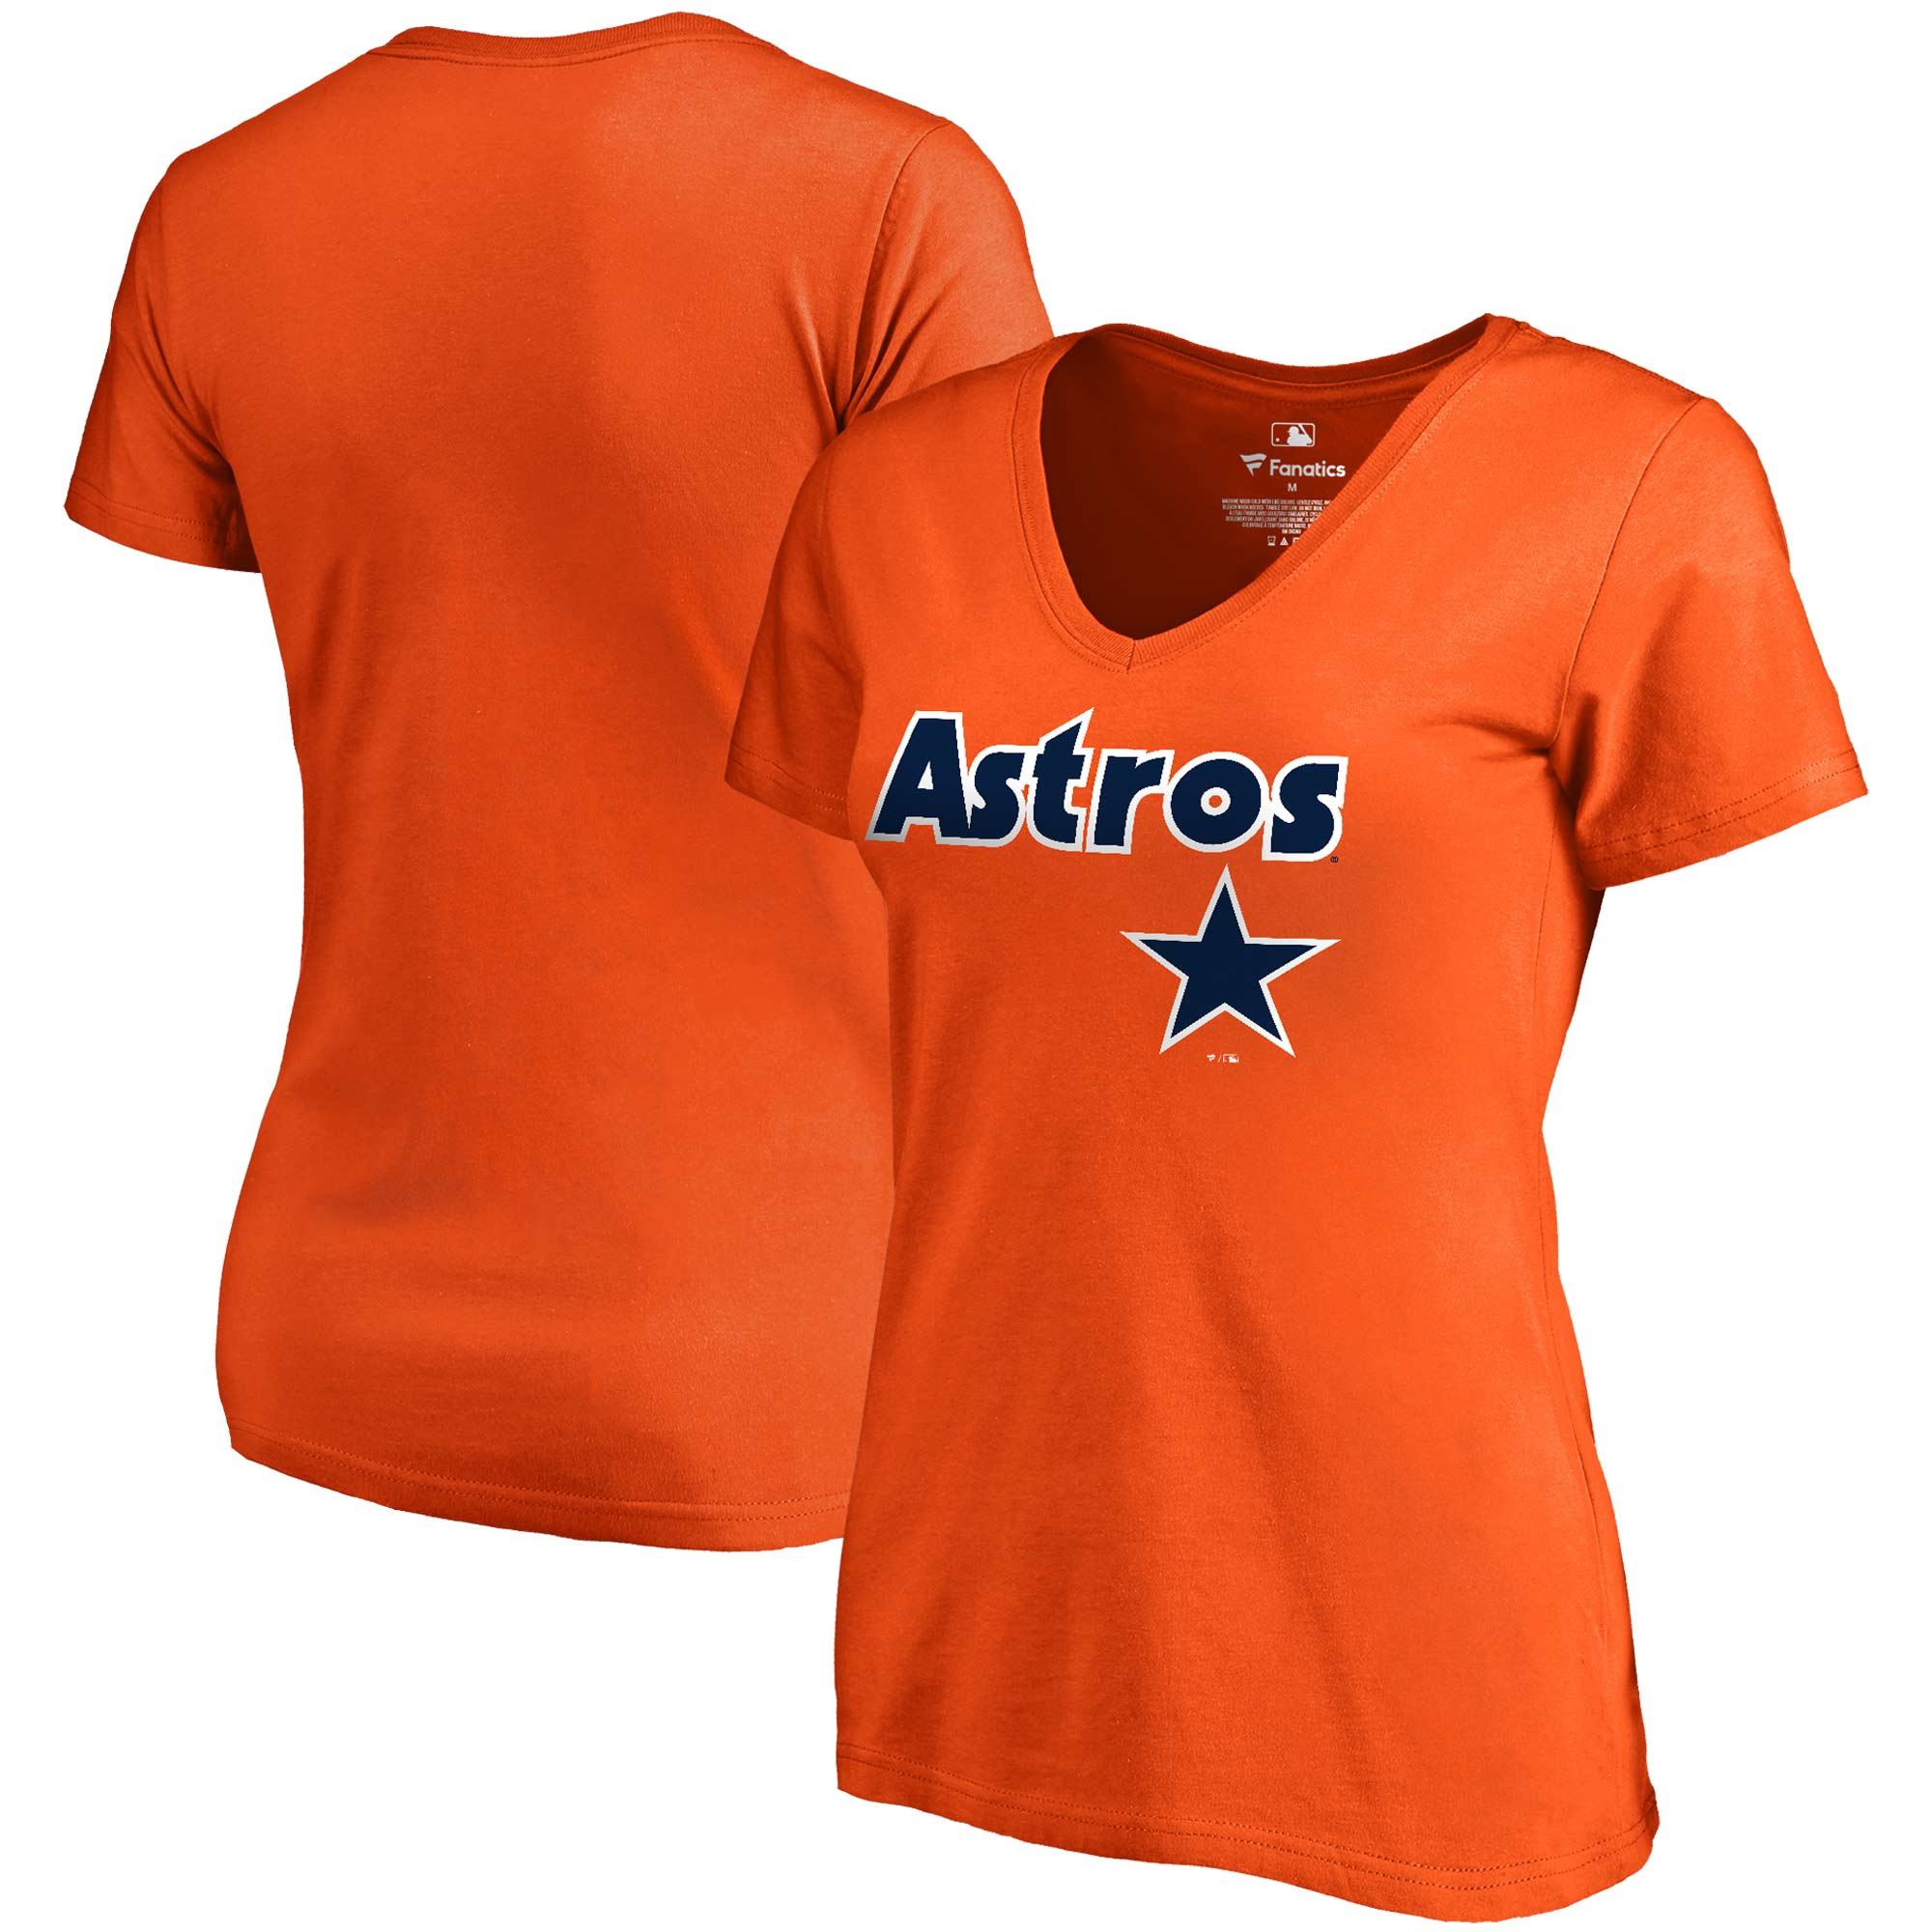 Houston Astros Fanatics Branded Women's Cooperstown Collection Wahconah V-Neck T-Shirt - Orange